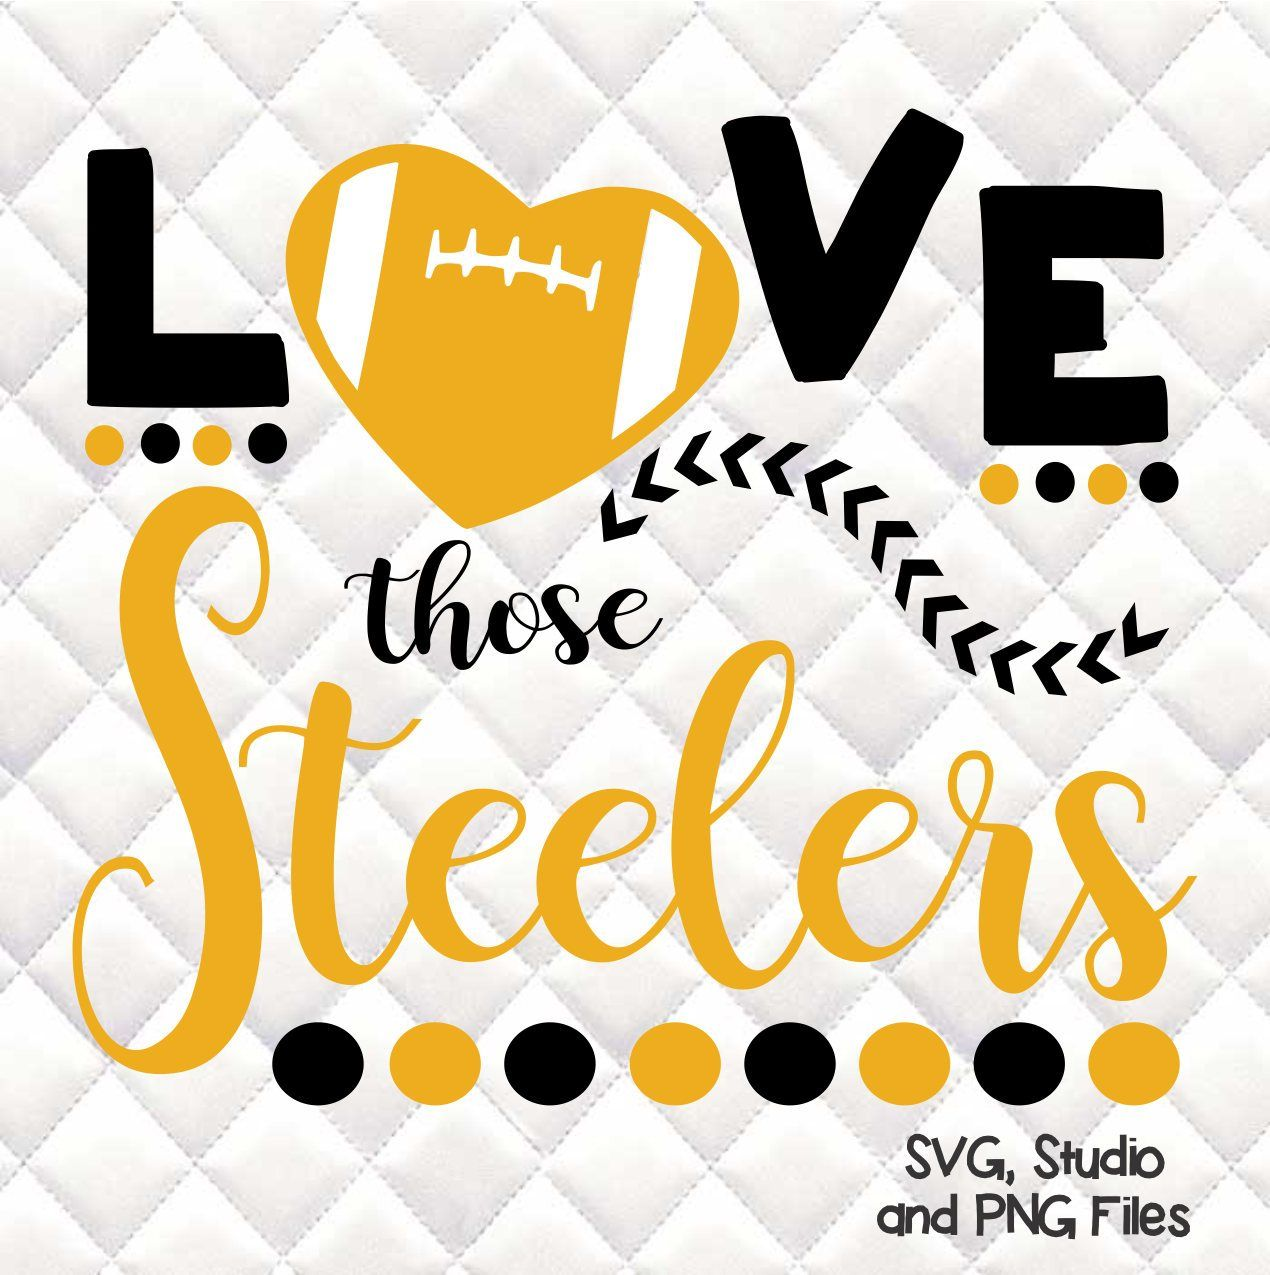 Love those Steelers Tailgating, Gameday SVG